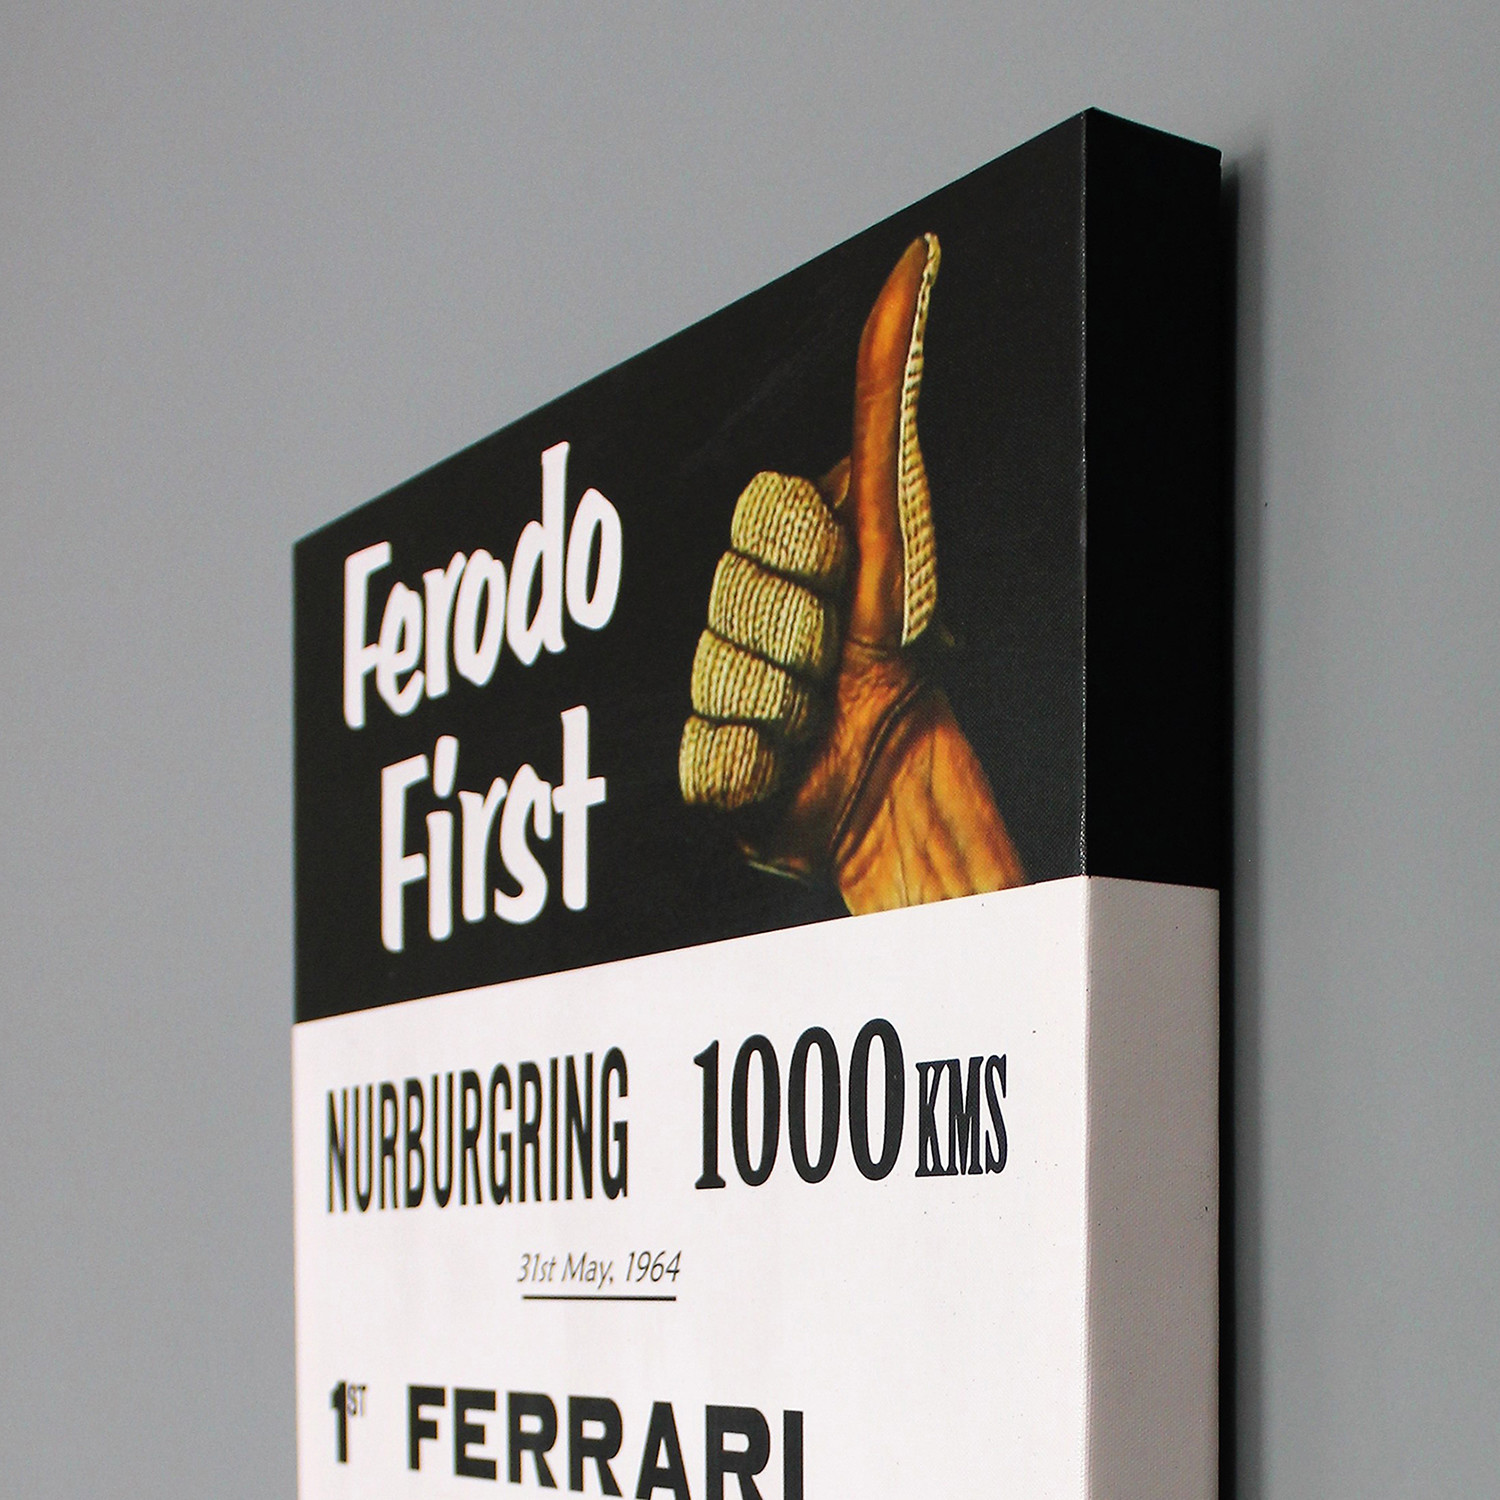 Nurburgring 1000 Km Ferodo 1964 Advertisement 18 W X 24 L X 1 625 D Nerocavallo Touch Of Modern